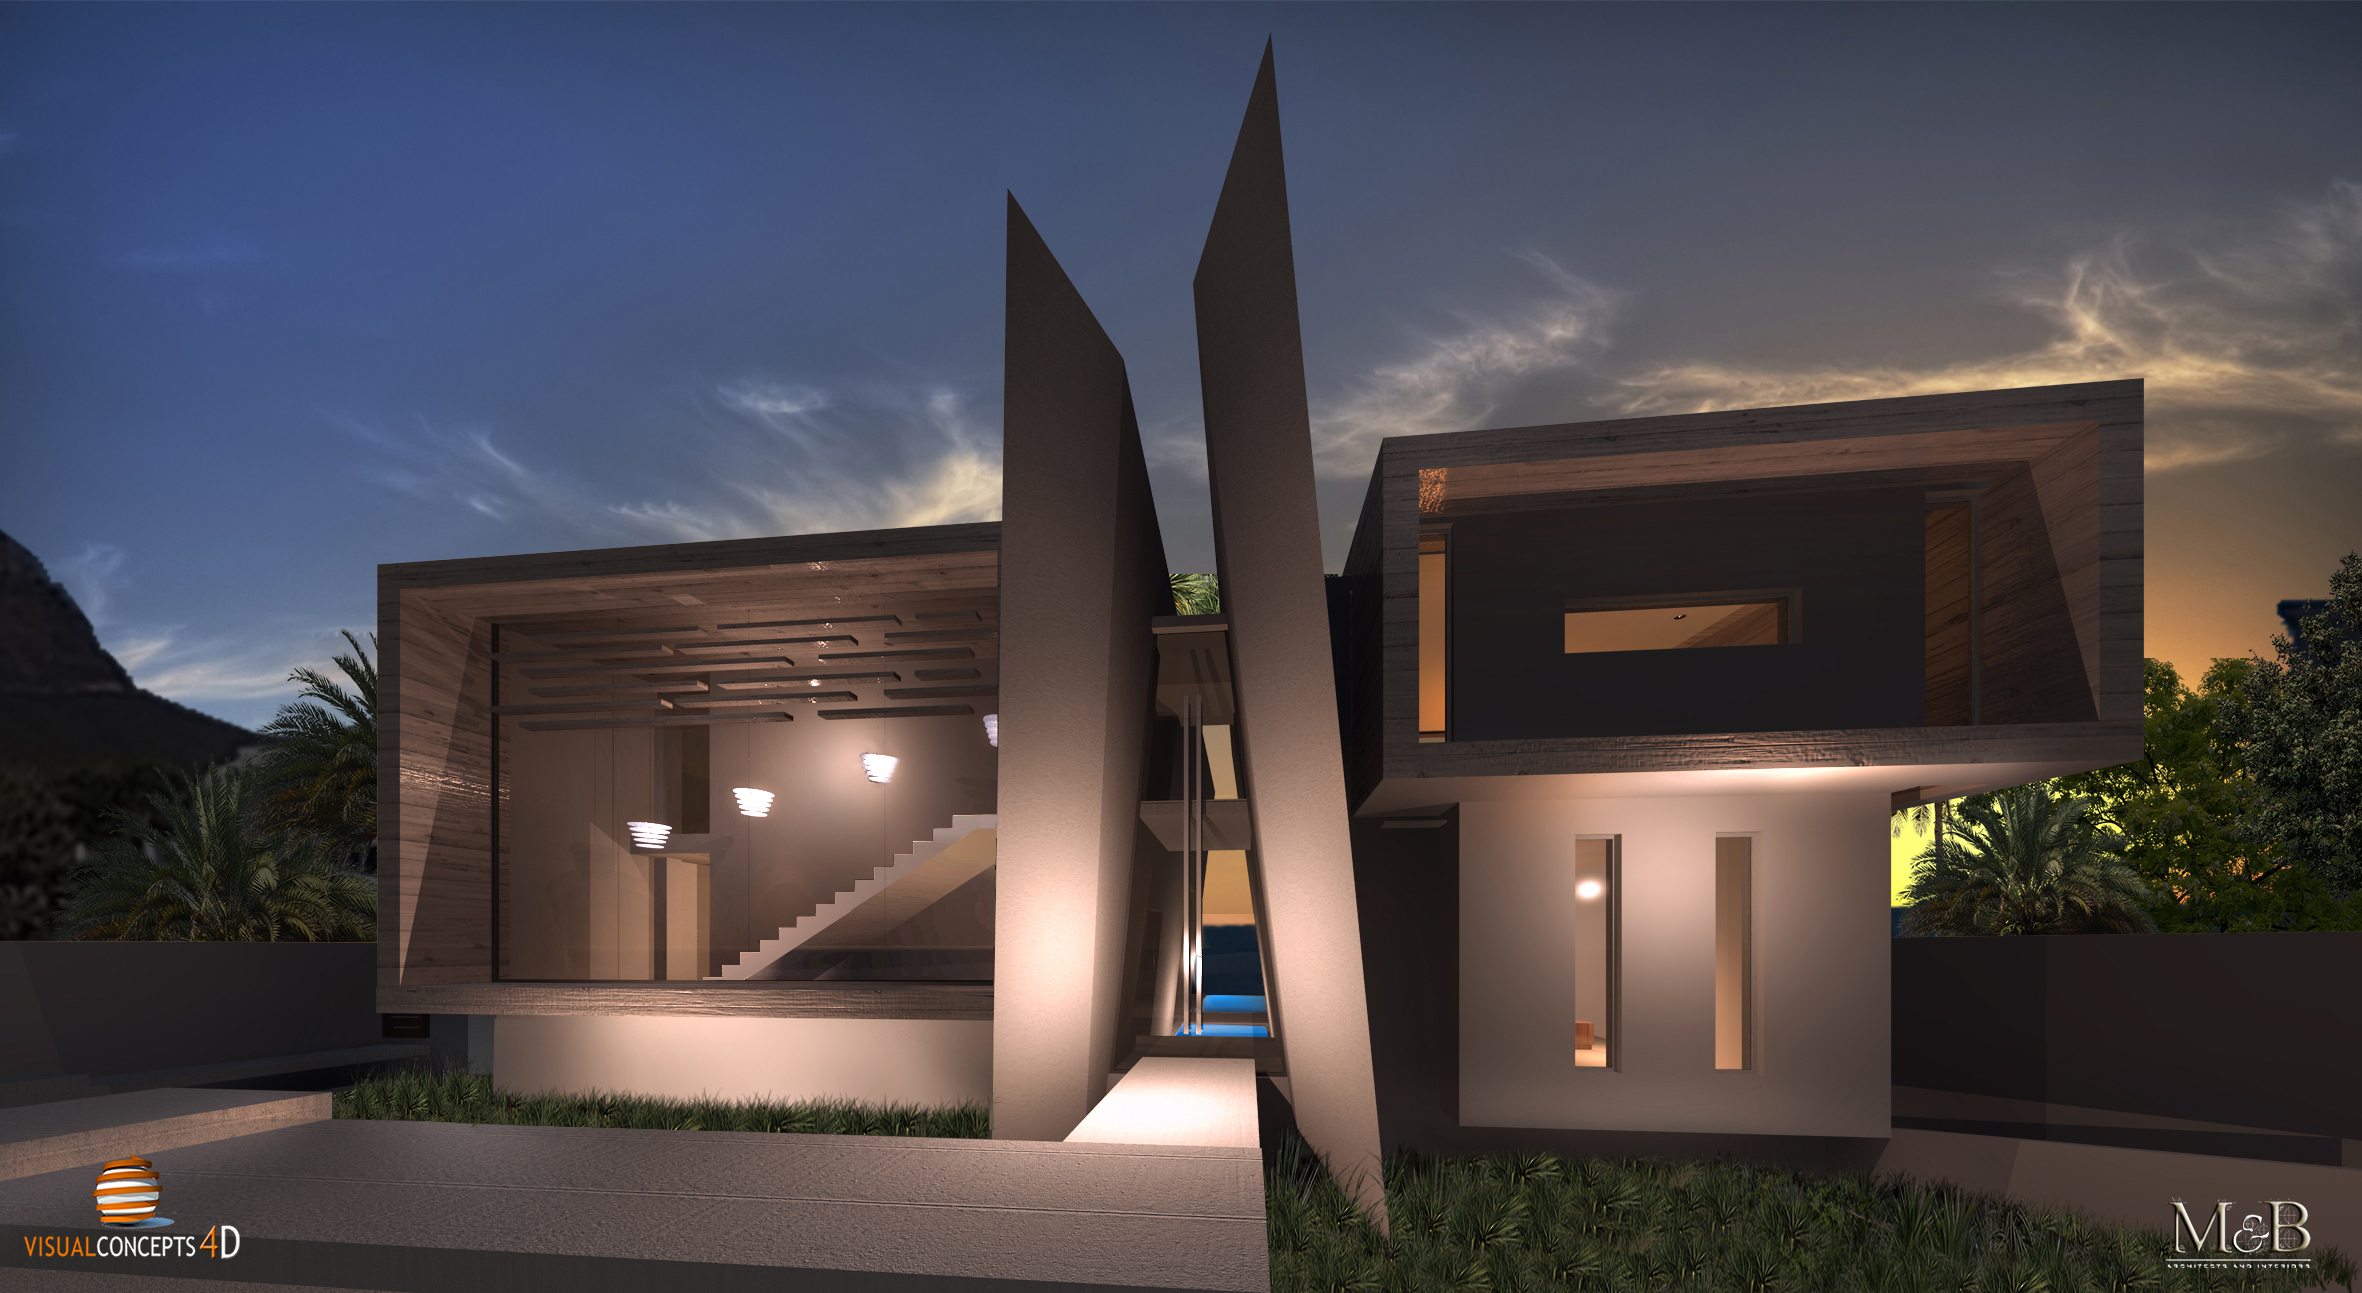 ENTRANCE EVENING RENDER